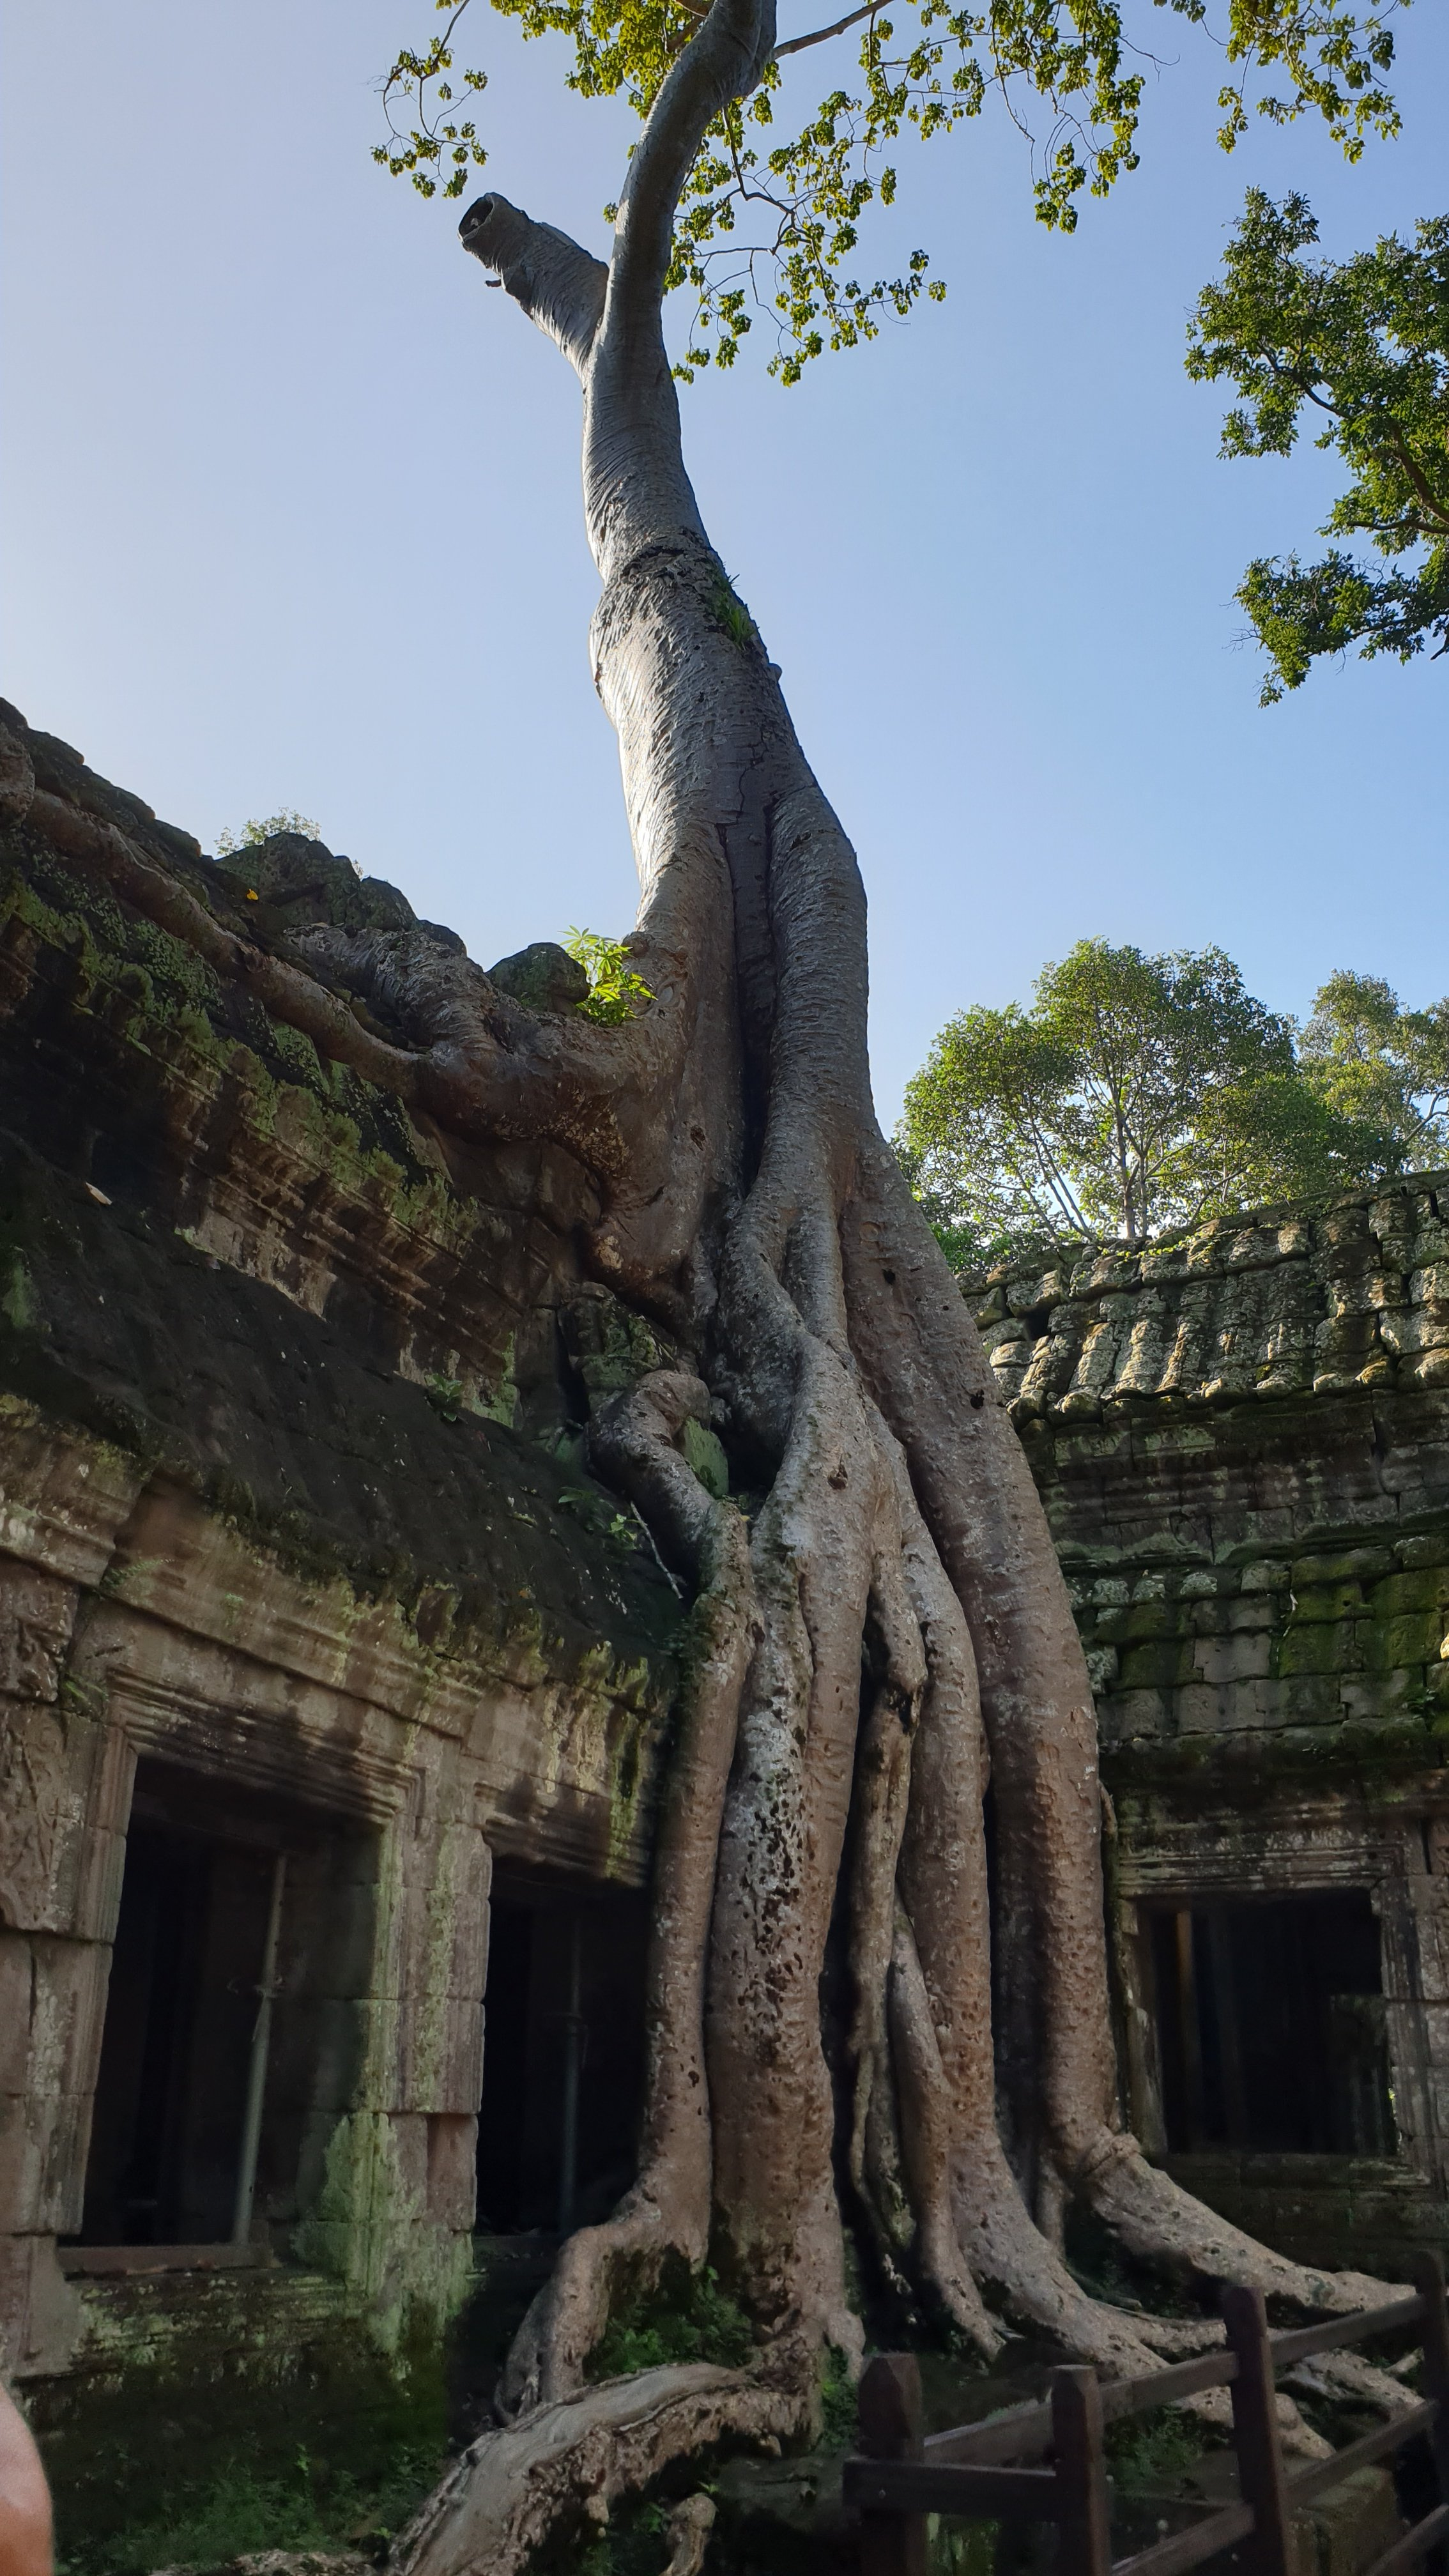 Tree growing on a temple